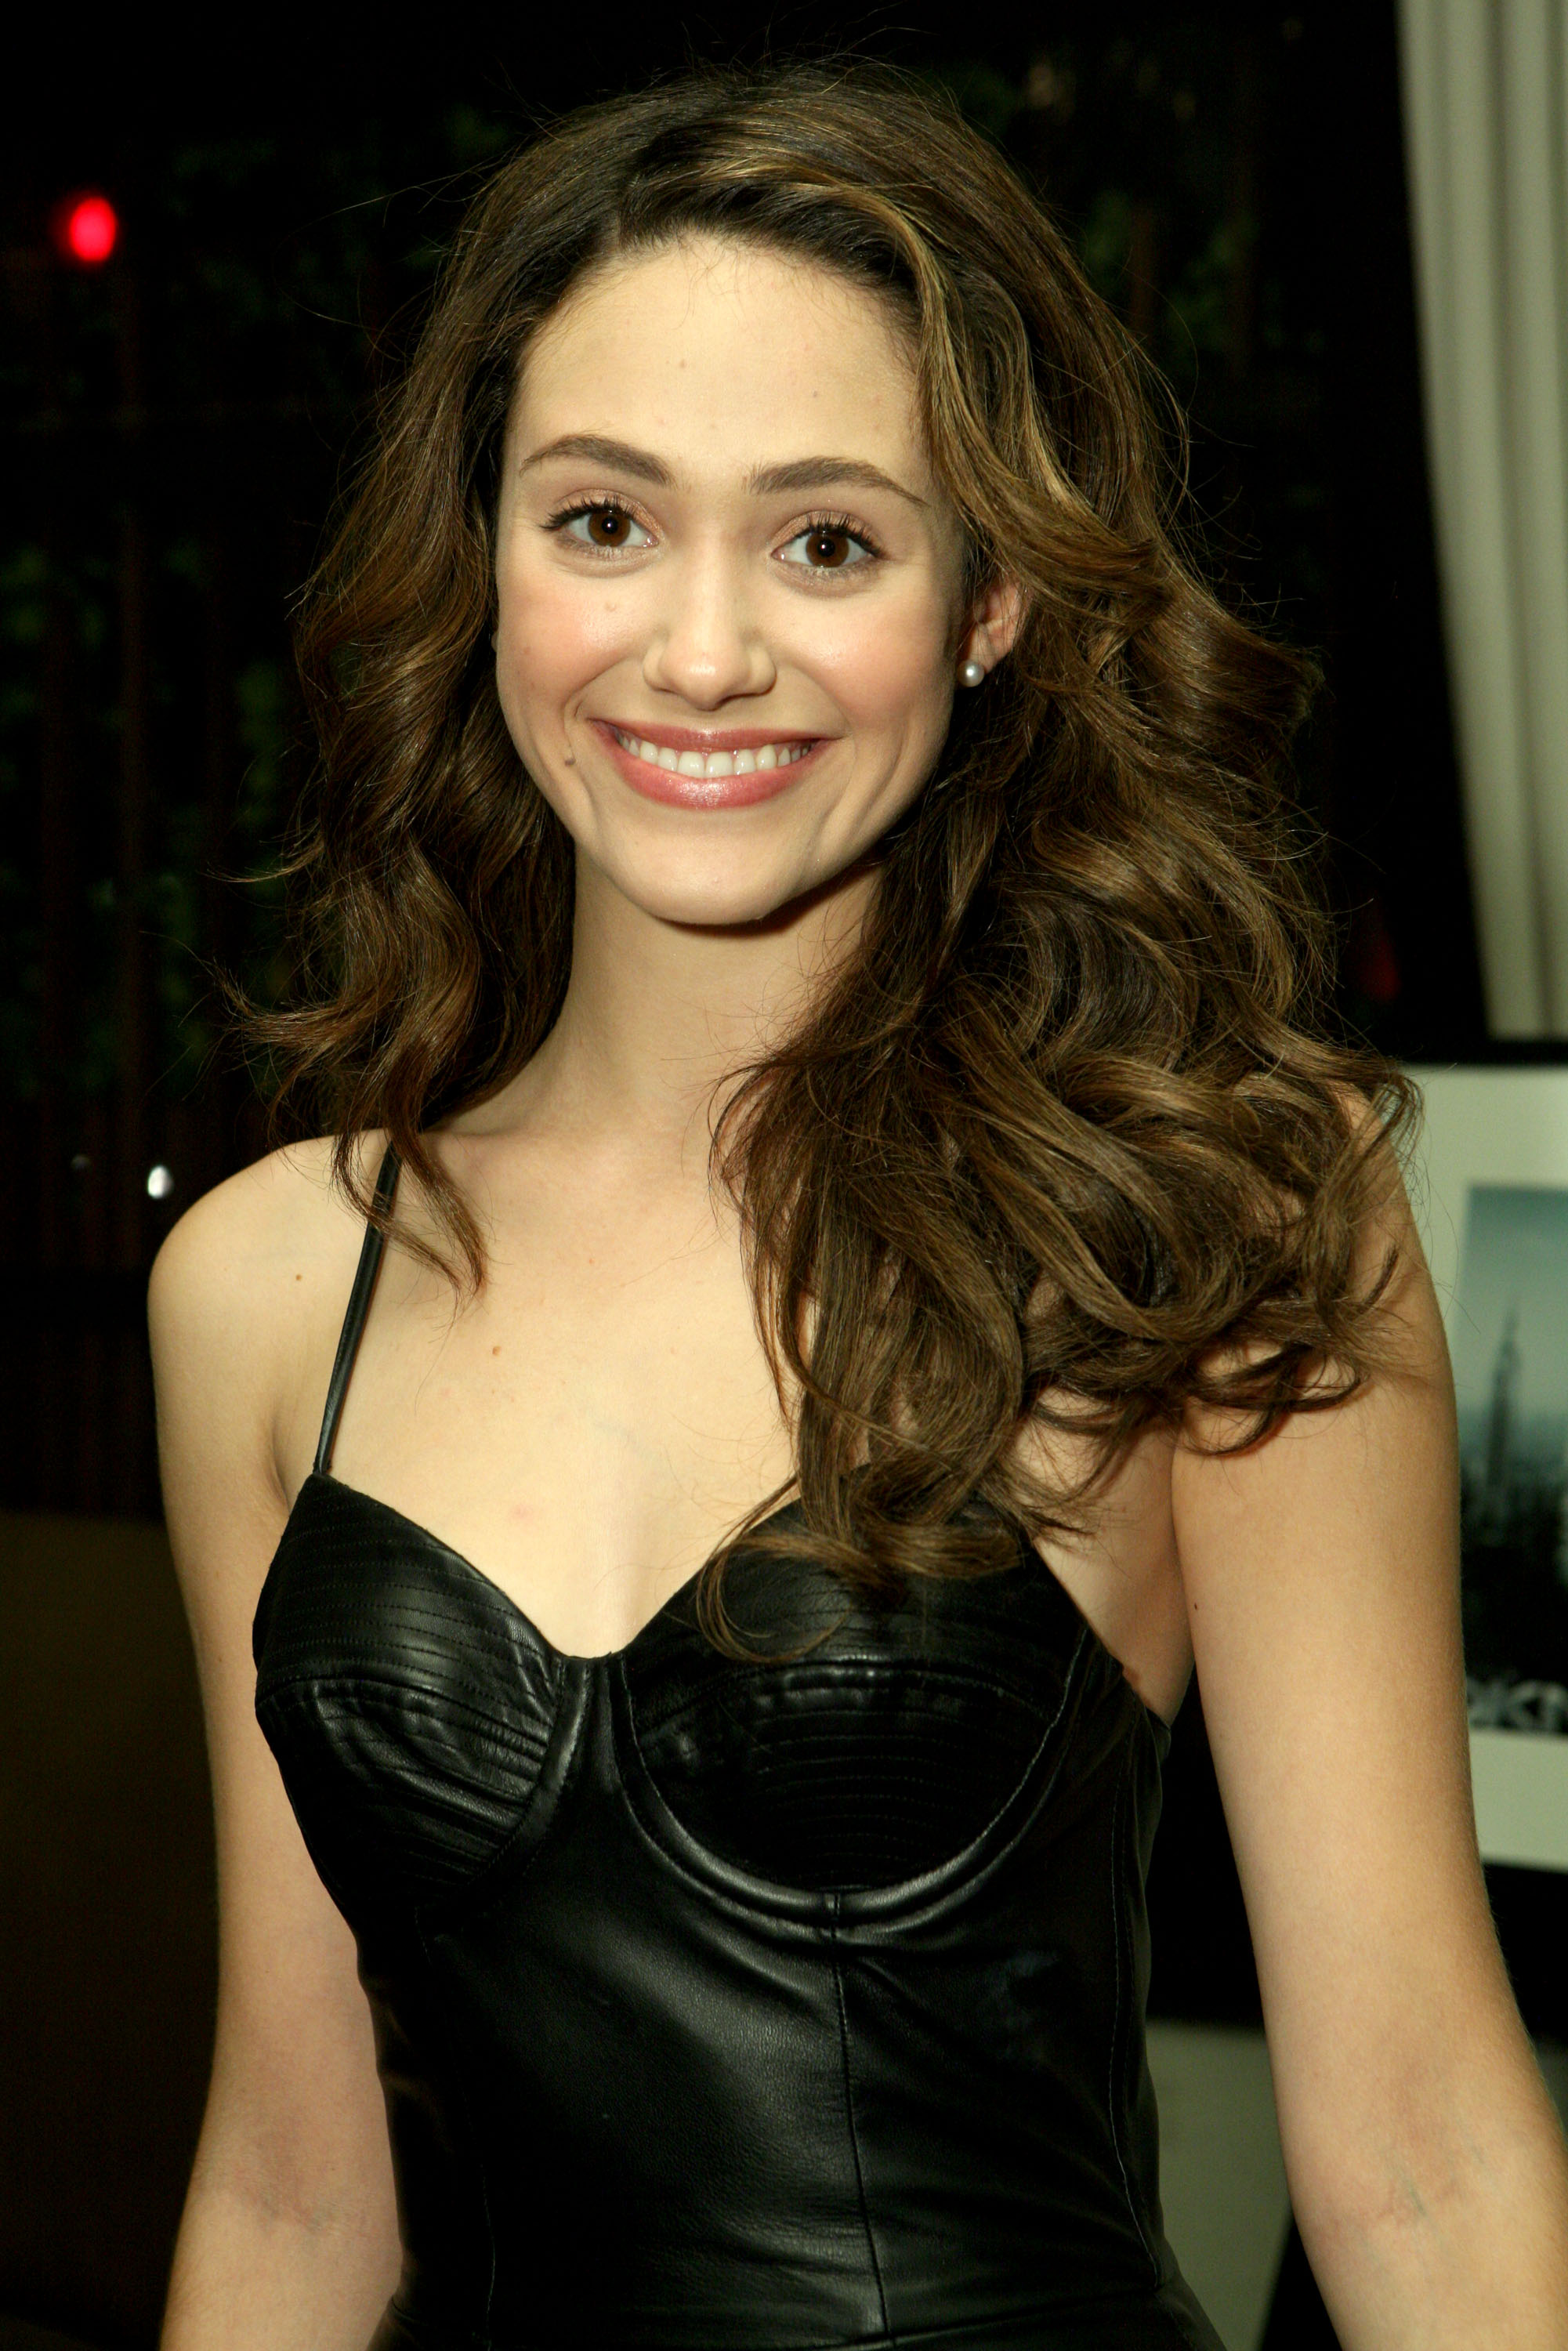 emmy rossum surprised fans by sharing sexy photos